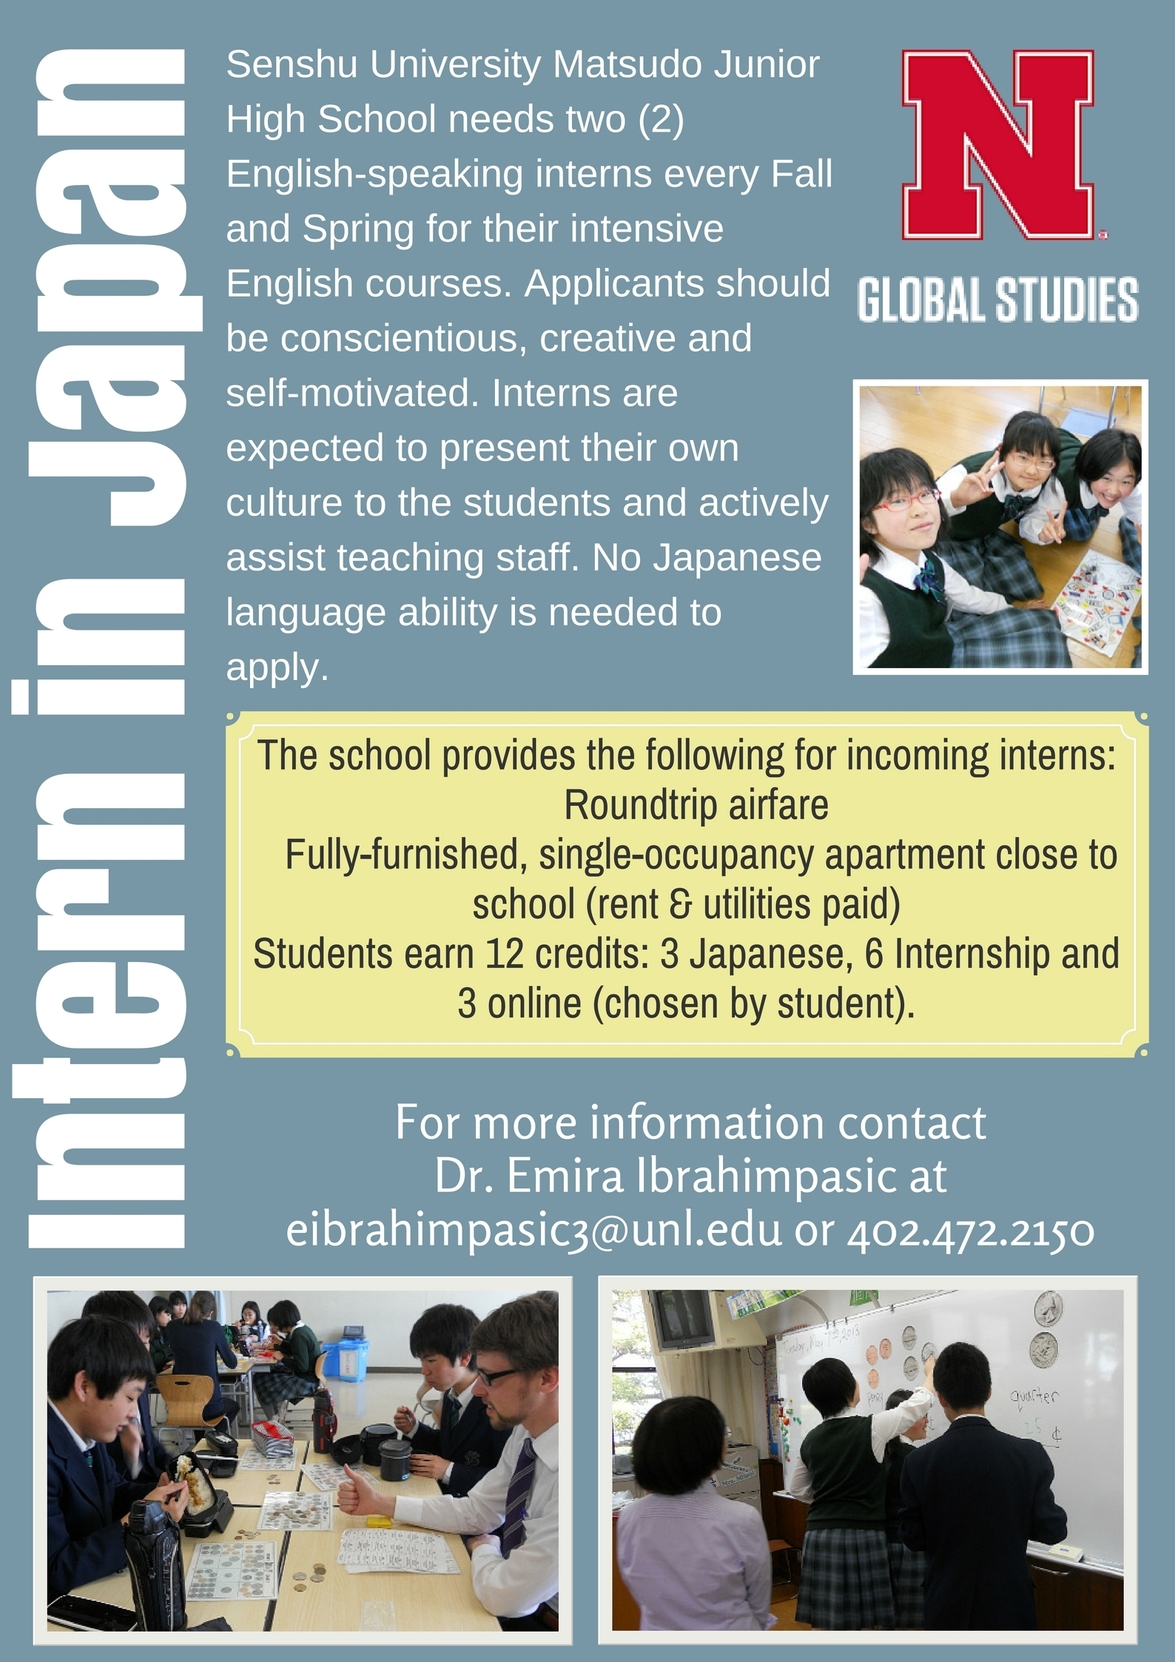 Intern in Japan during Spring 2018